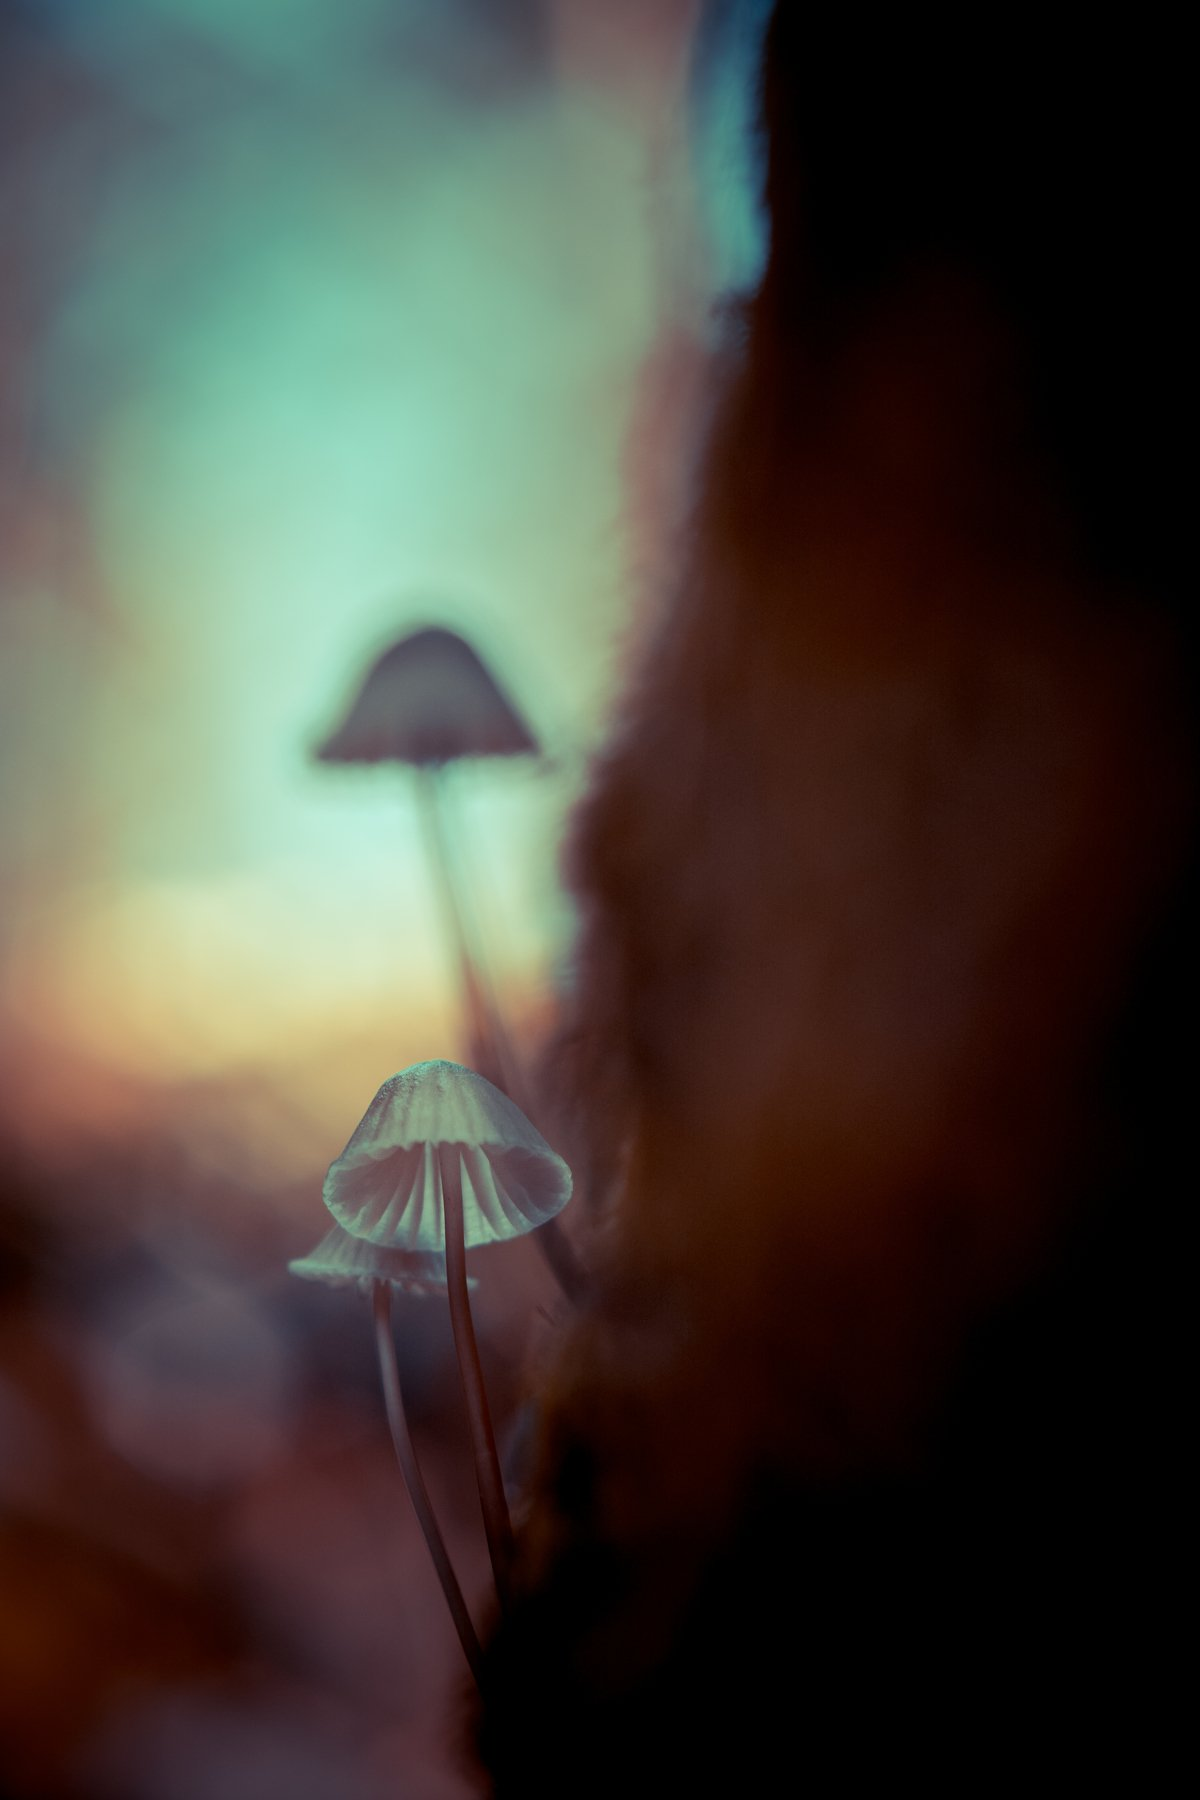 small, fungi, mushroom, art, close up, macro, nature, Antonio Bernardino